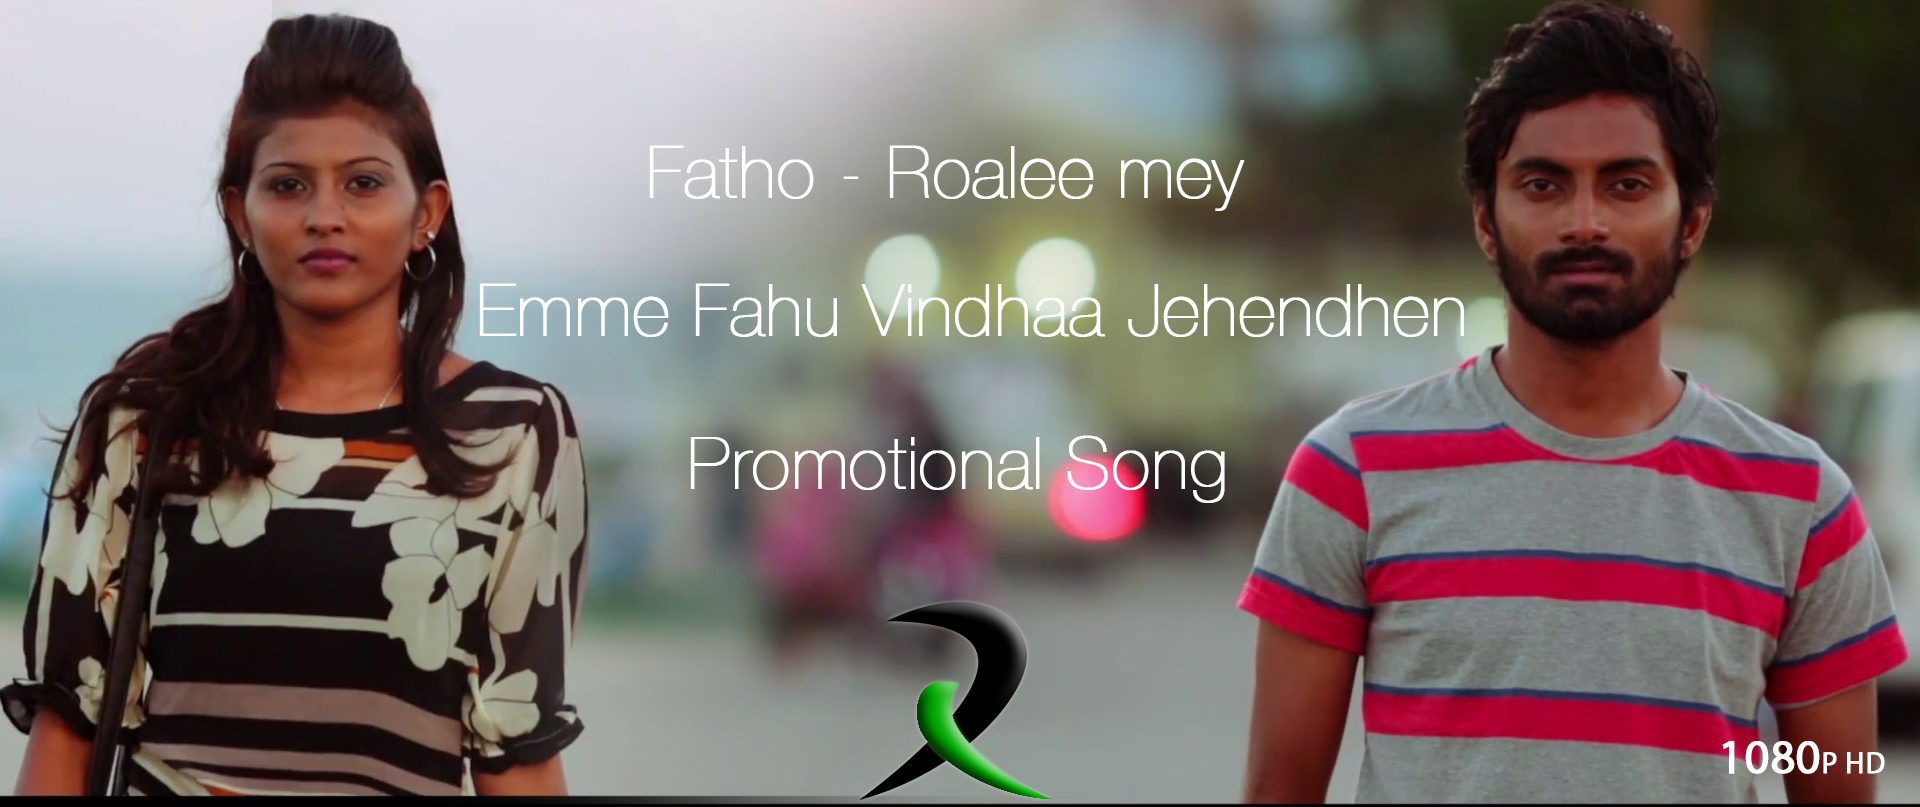 Fatho - Emme Fahu Vindhaa Jehendhen Promotional Song (2015) WEBRip x264-DhiRLS